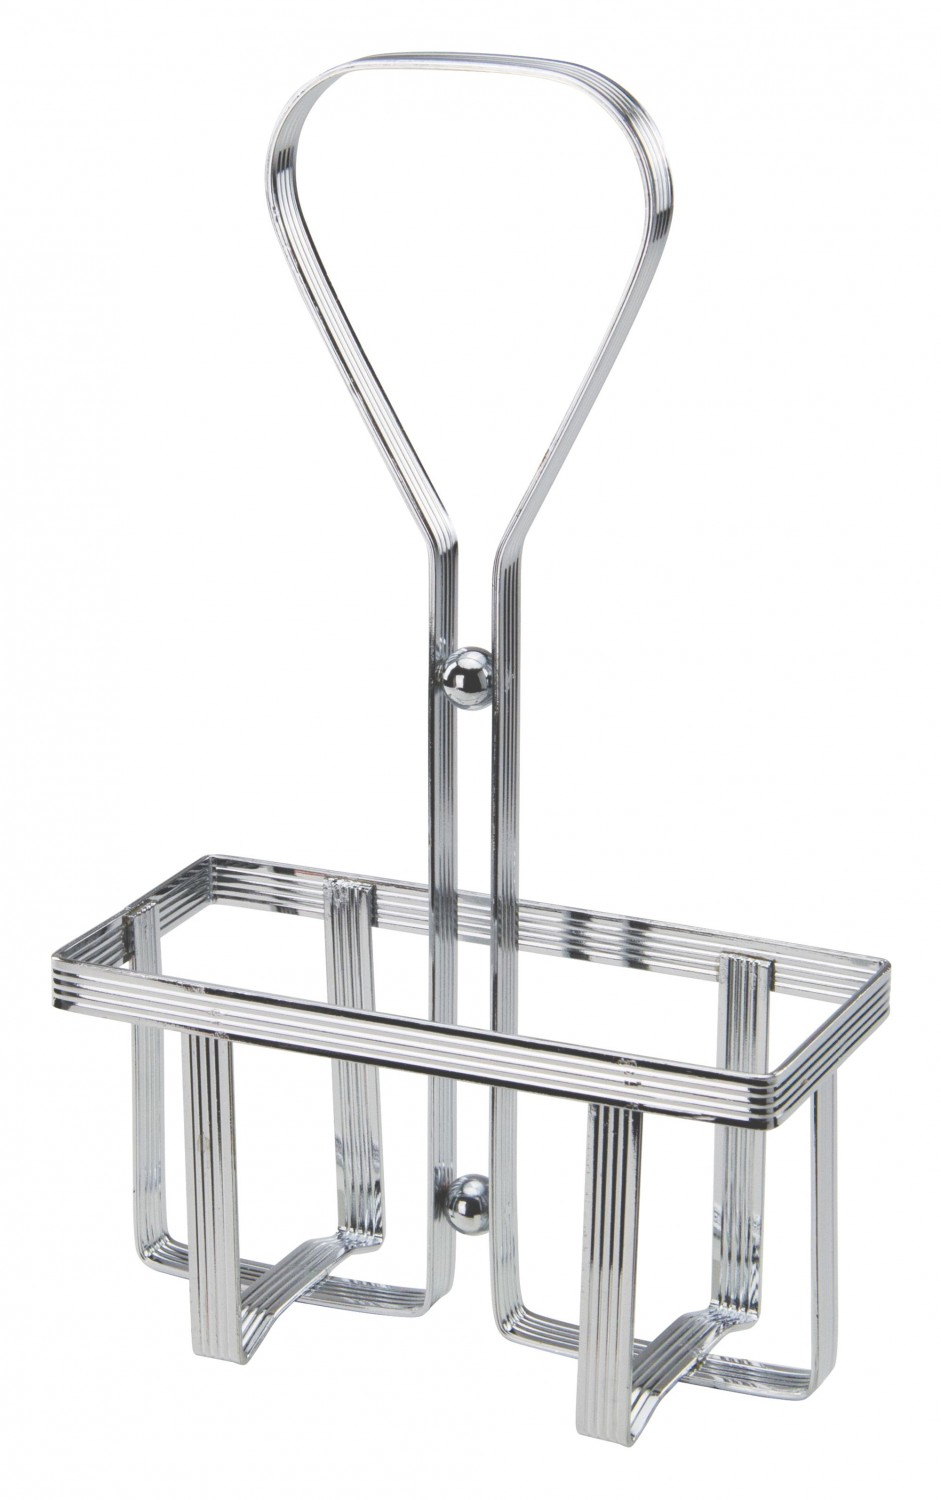 Winco WH-5 Square Chrome-Plated Oil and Vinegar Cruet Rack